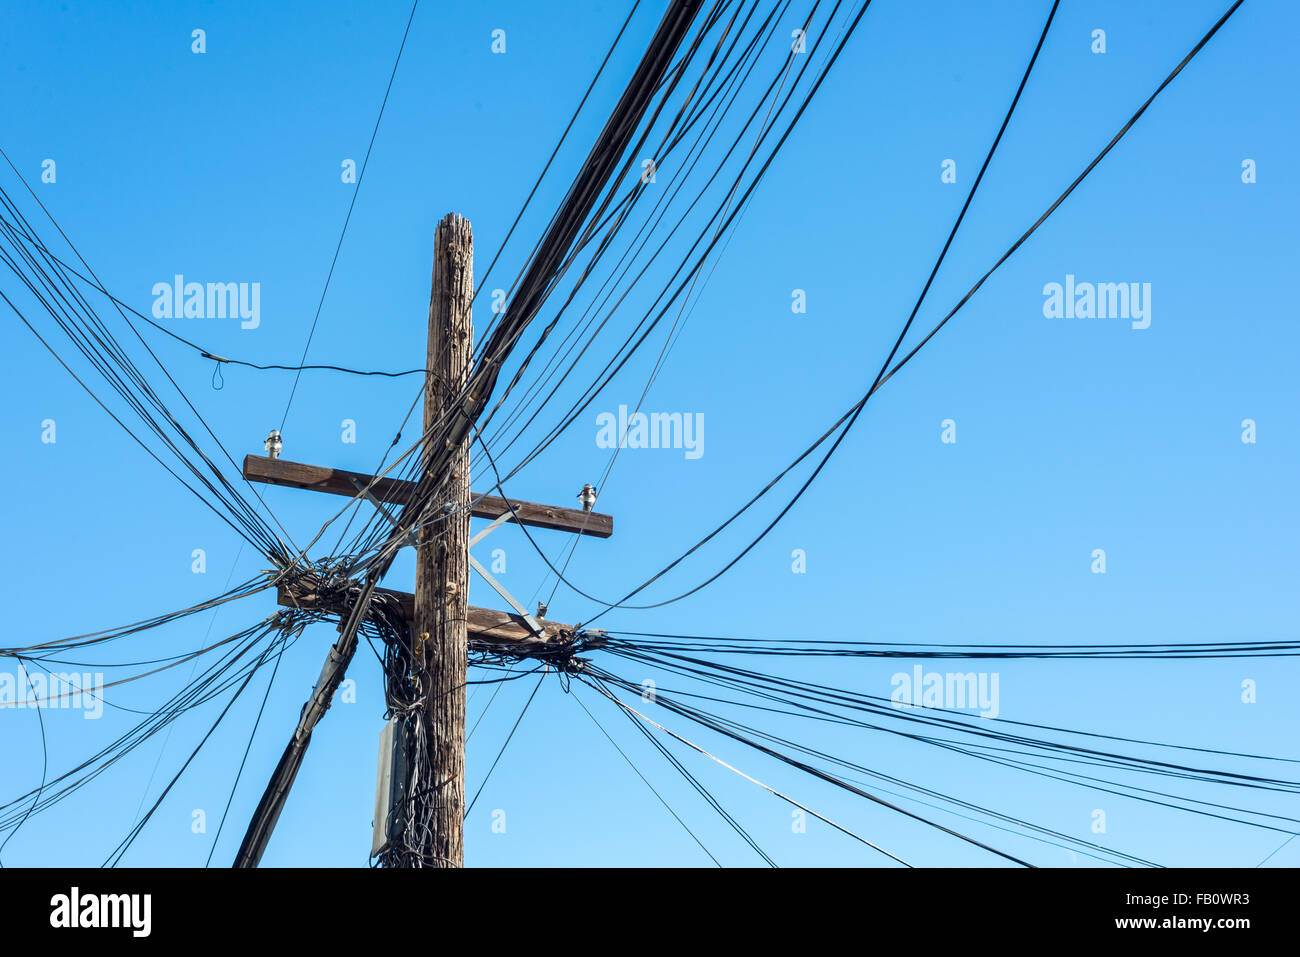 hight resolution of quintessential and untidy solution to power lines in a large north american city stock image